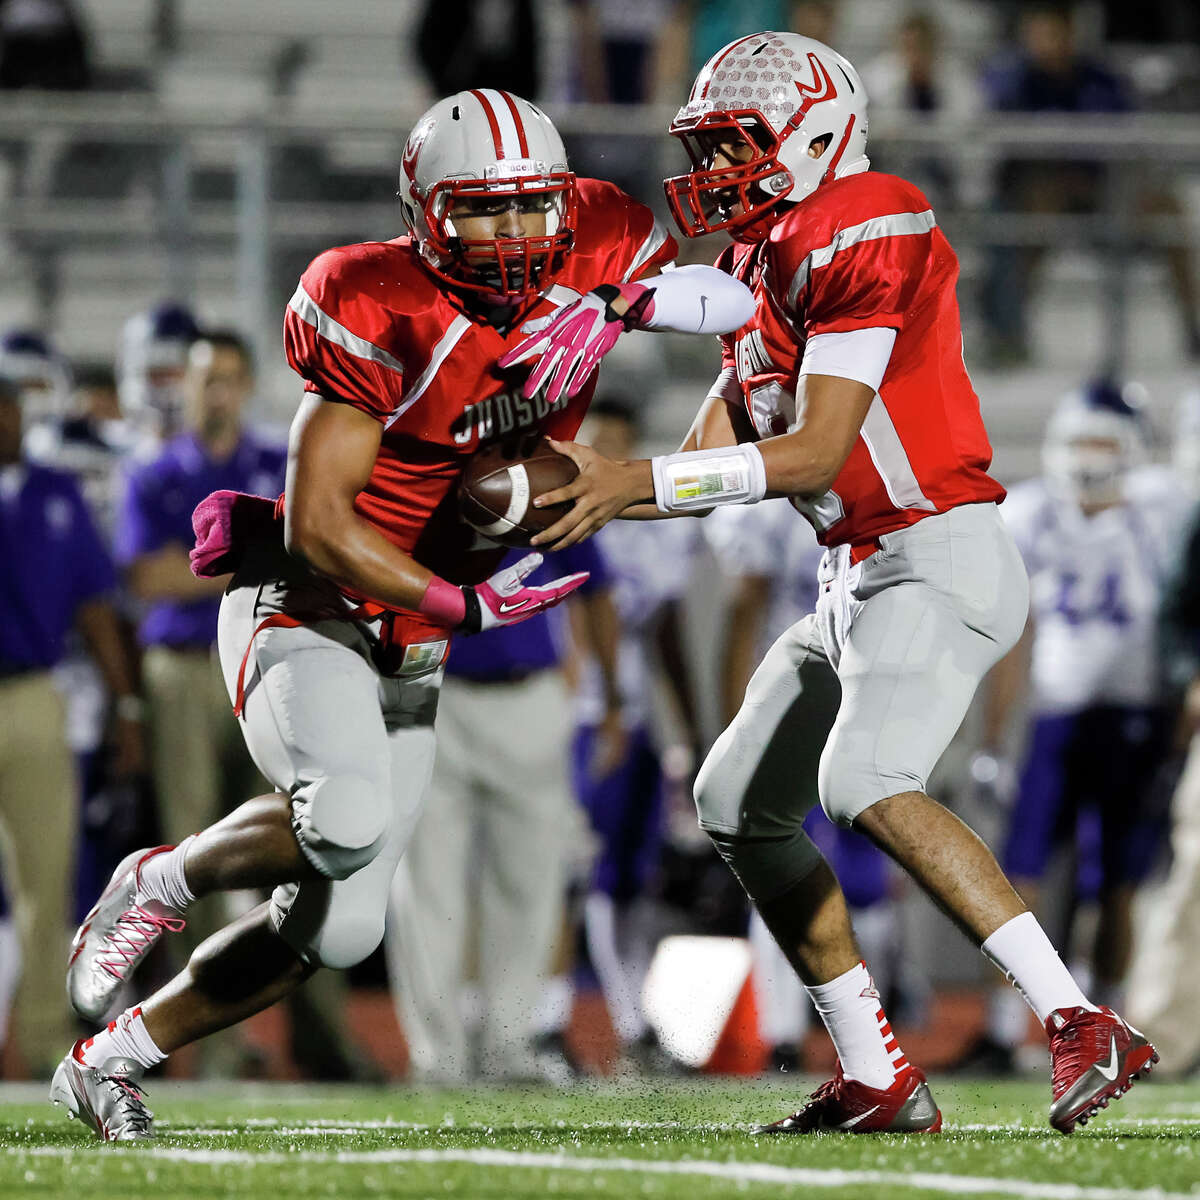 Judson's Malik Pryor (left) takes a hand off from Rayjohn Austin-Ramsey during the first quarter of their game at Rutledge Stadium on Friday, Oct. 25, 2013. Judson set a state record for consecutive winning seasons at 37 with the victory over the Rattlers. MARVIN PFEIFFER/ mpfeiffer@express-news.net